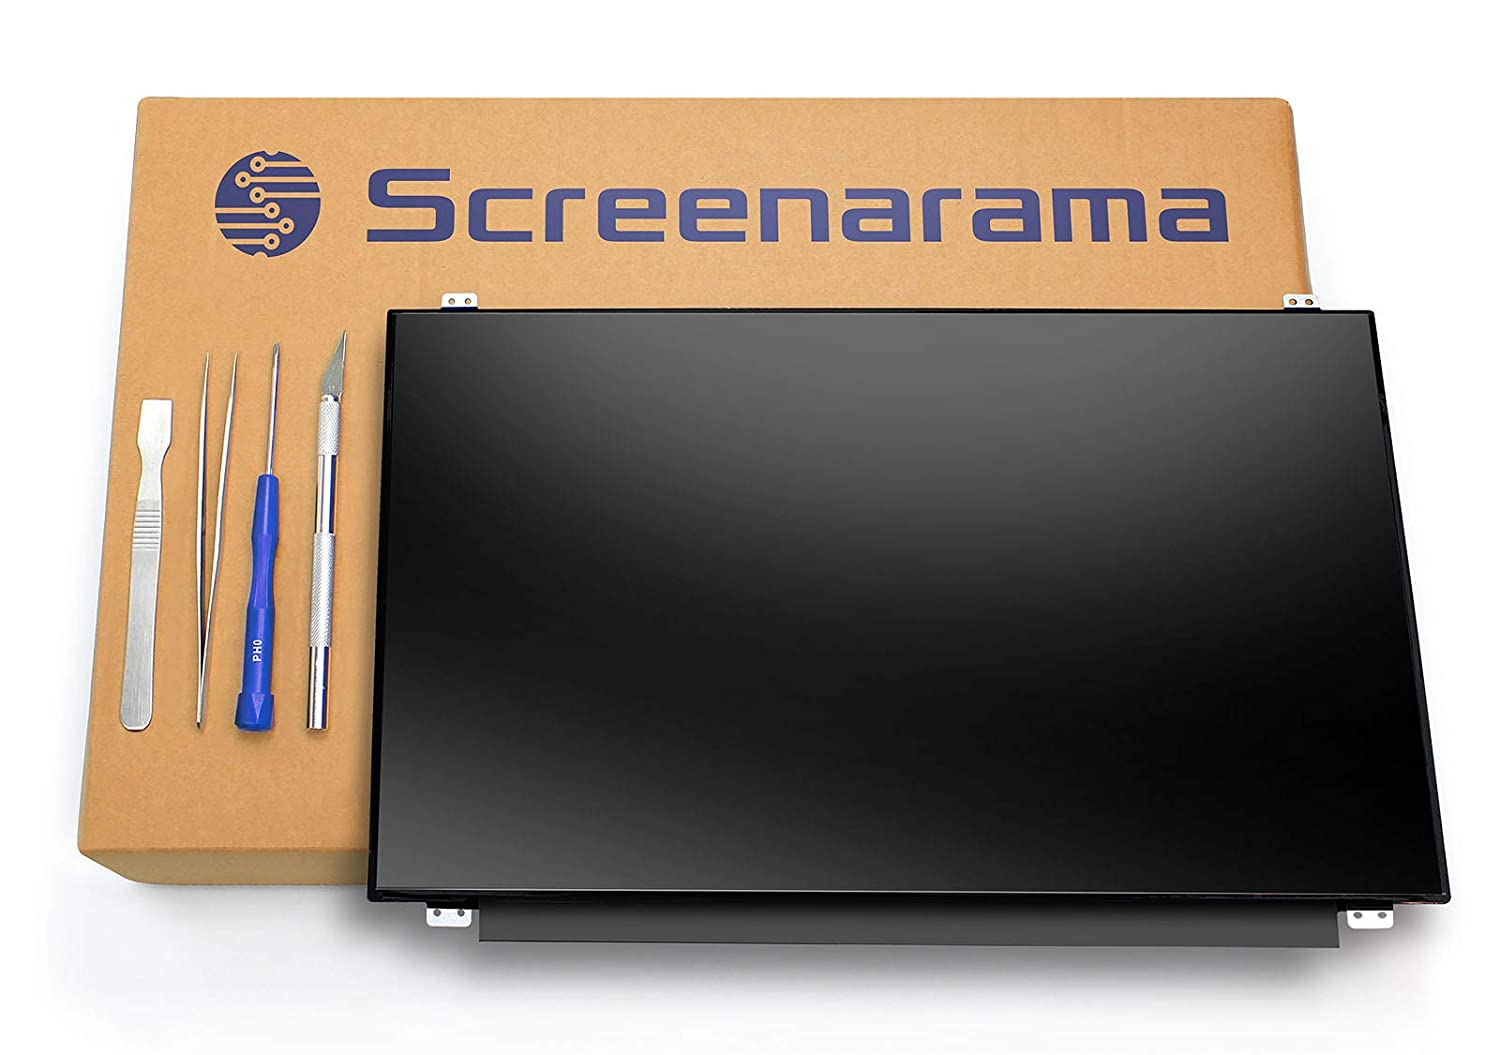 HD 1366x768 LCD LED Display with Tools Glossy SCREENARAMA New Screen Replacement for Dell Inspiron 3878